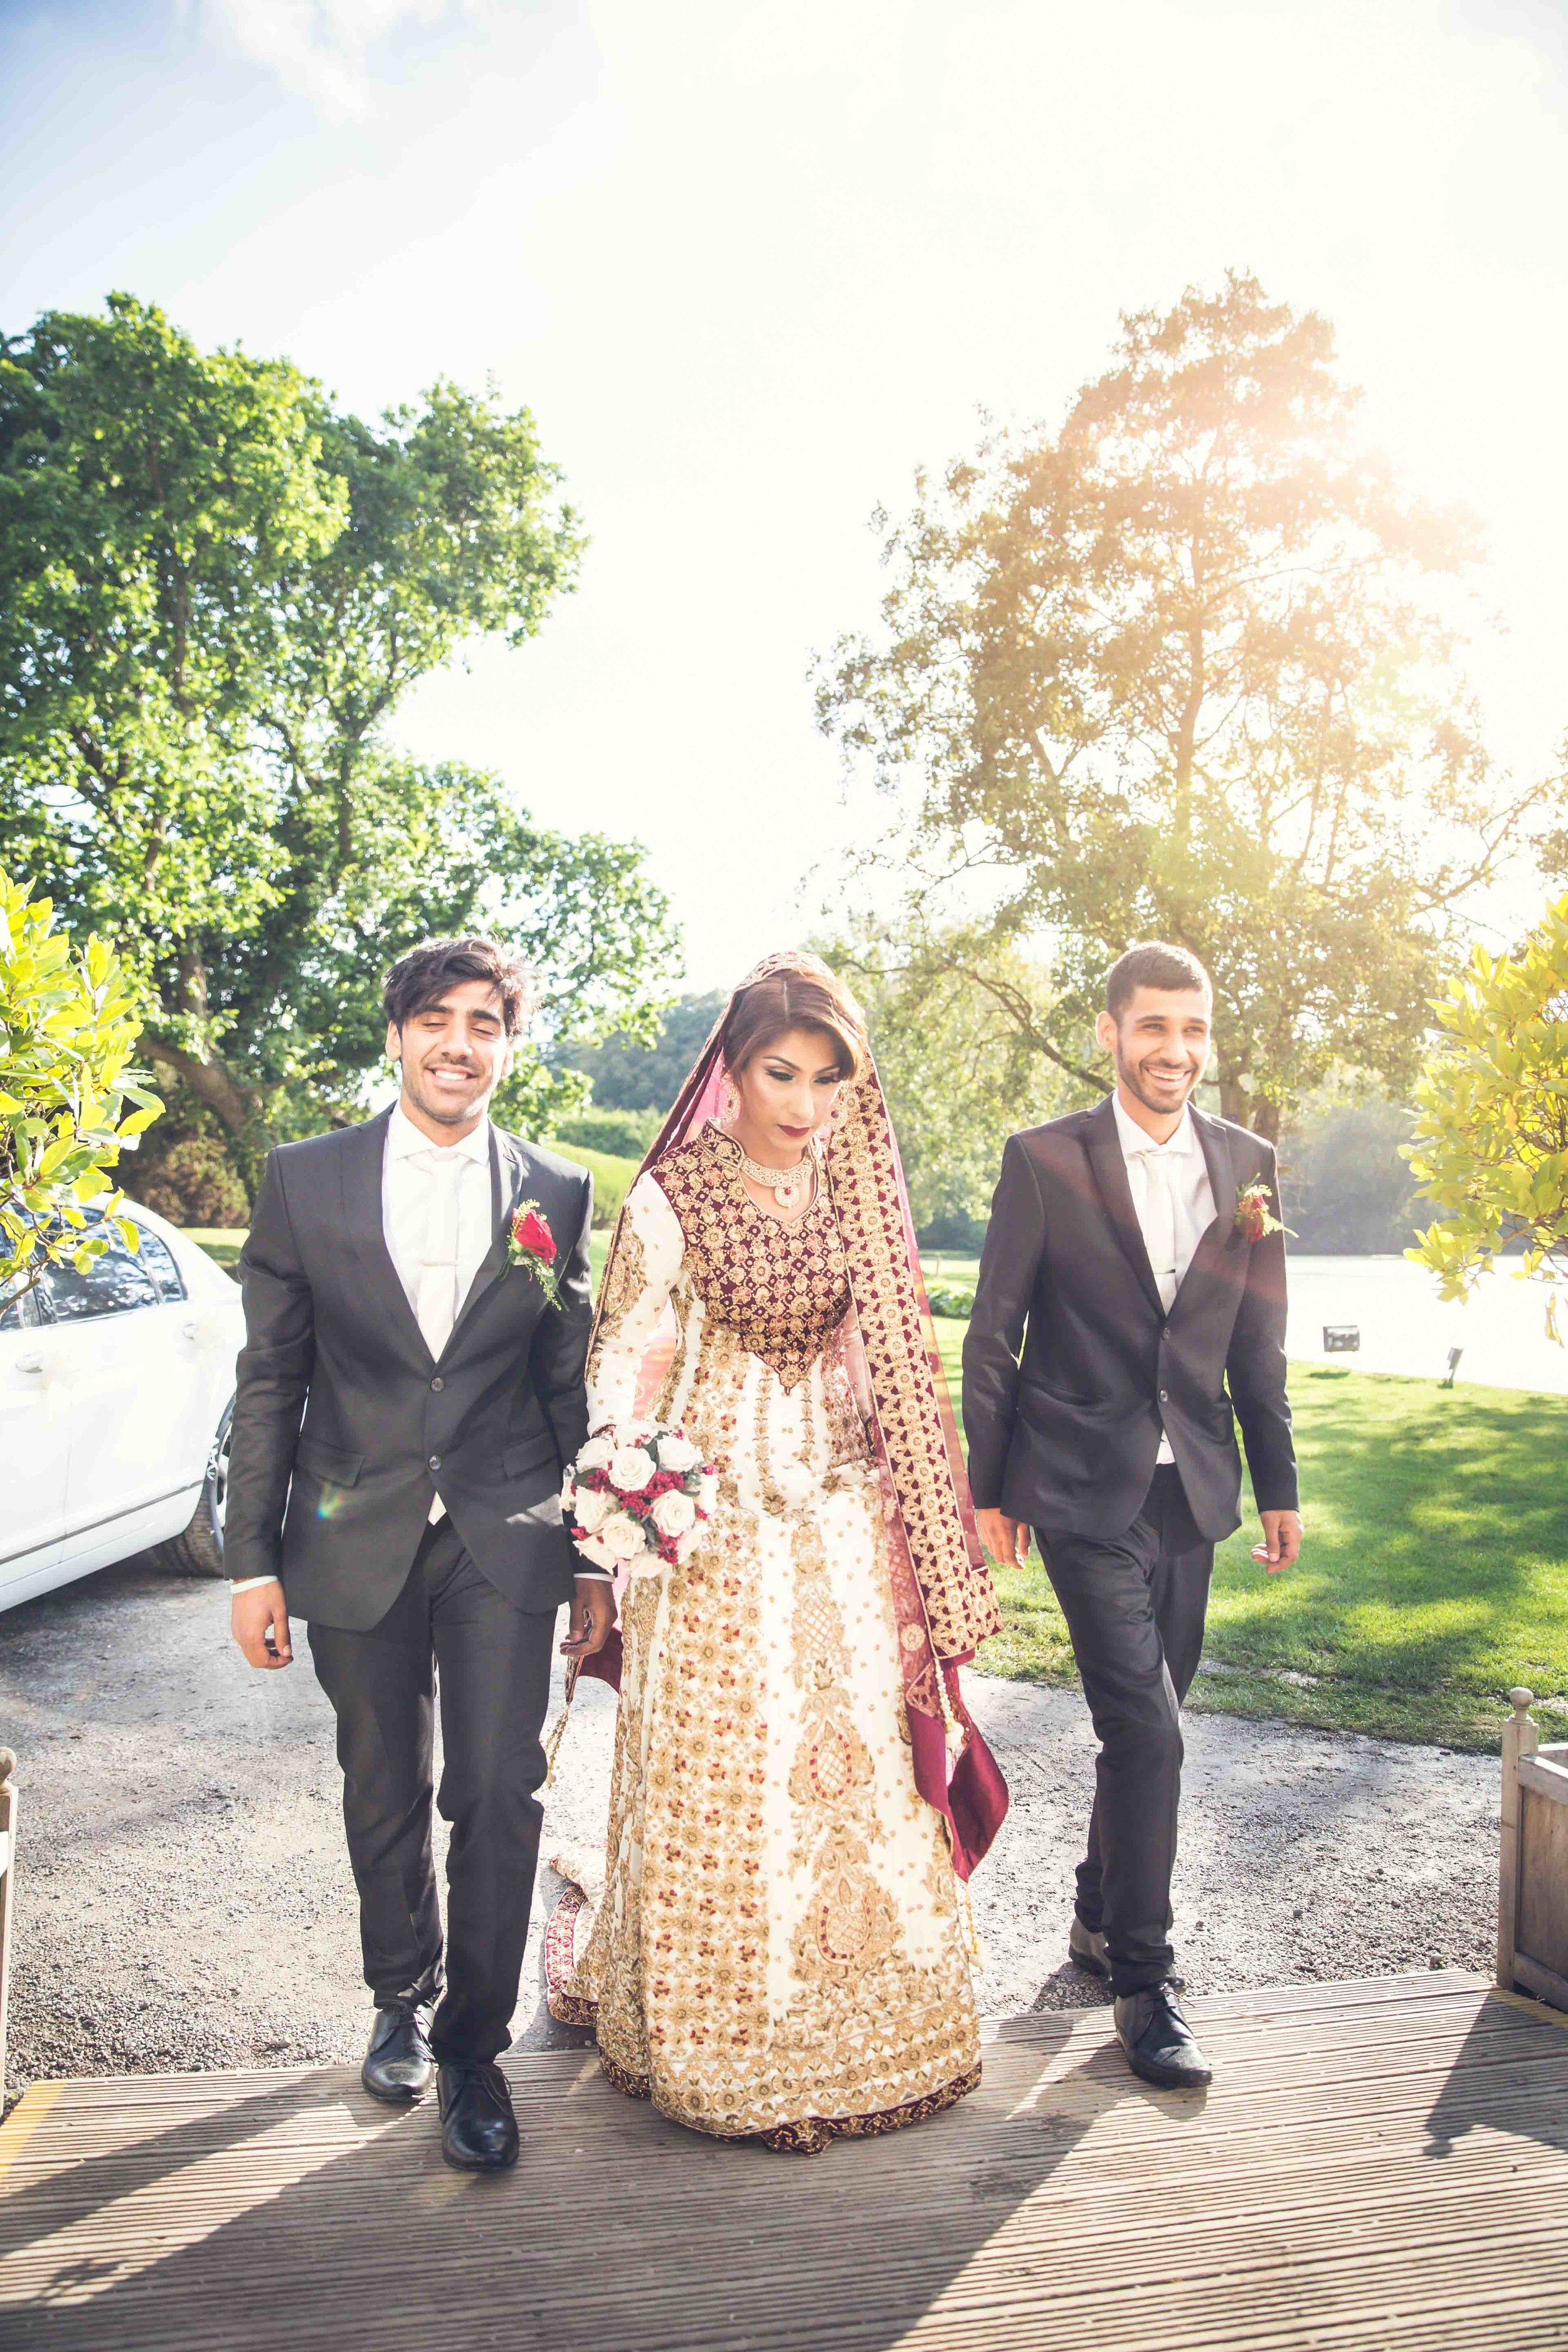 Asian Wedding Photographer Opu Sultan Photography Lyme Park Scotland Edinburgh Glasgow London Manchester Liverpool Birmingham Wedding Photos prewed shoot Azman & Saira Blog-62.jpg